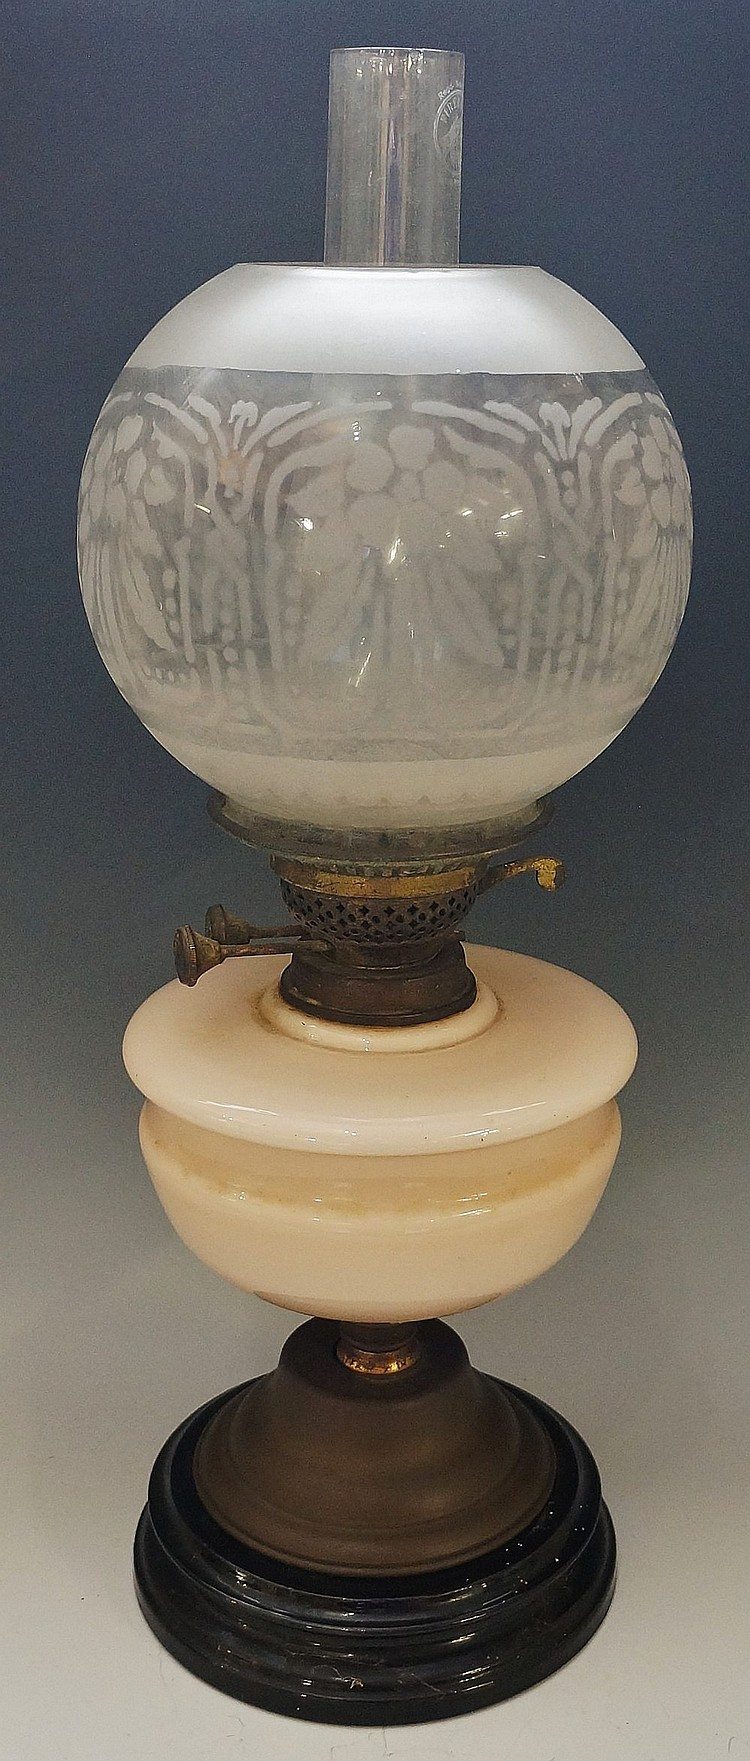 A Victorian oil lamp with pink glass reservoir and acid etched frosted glob